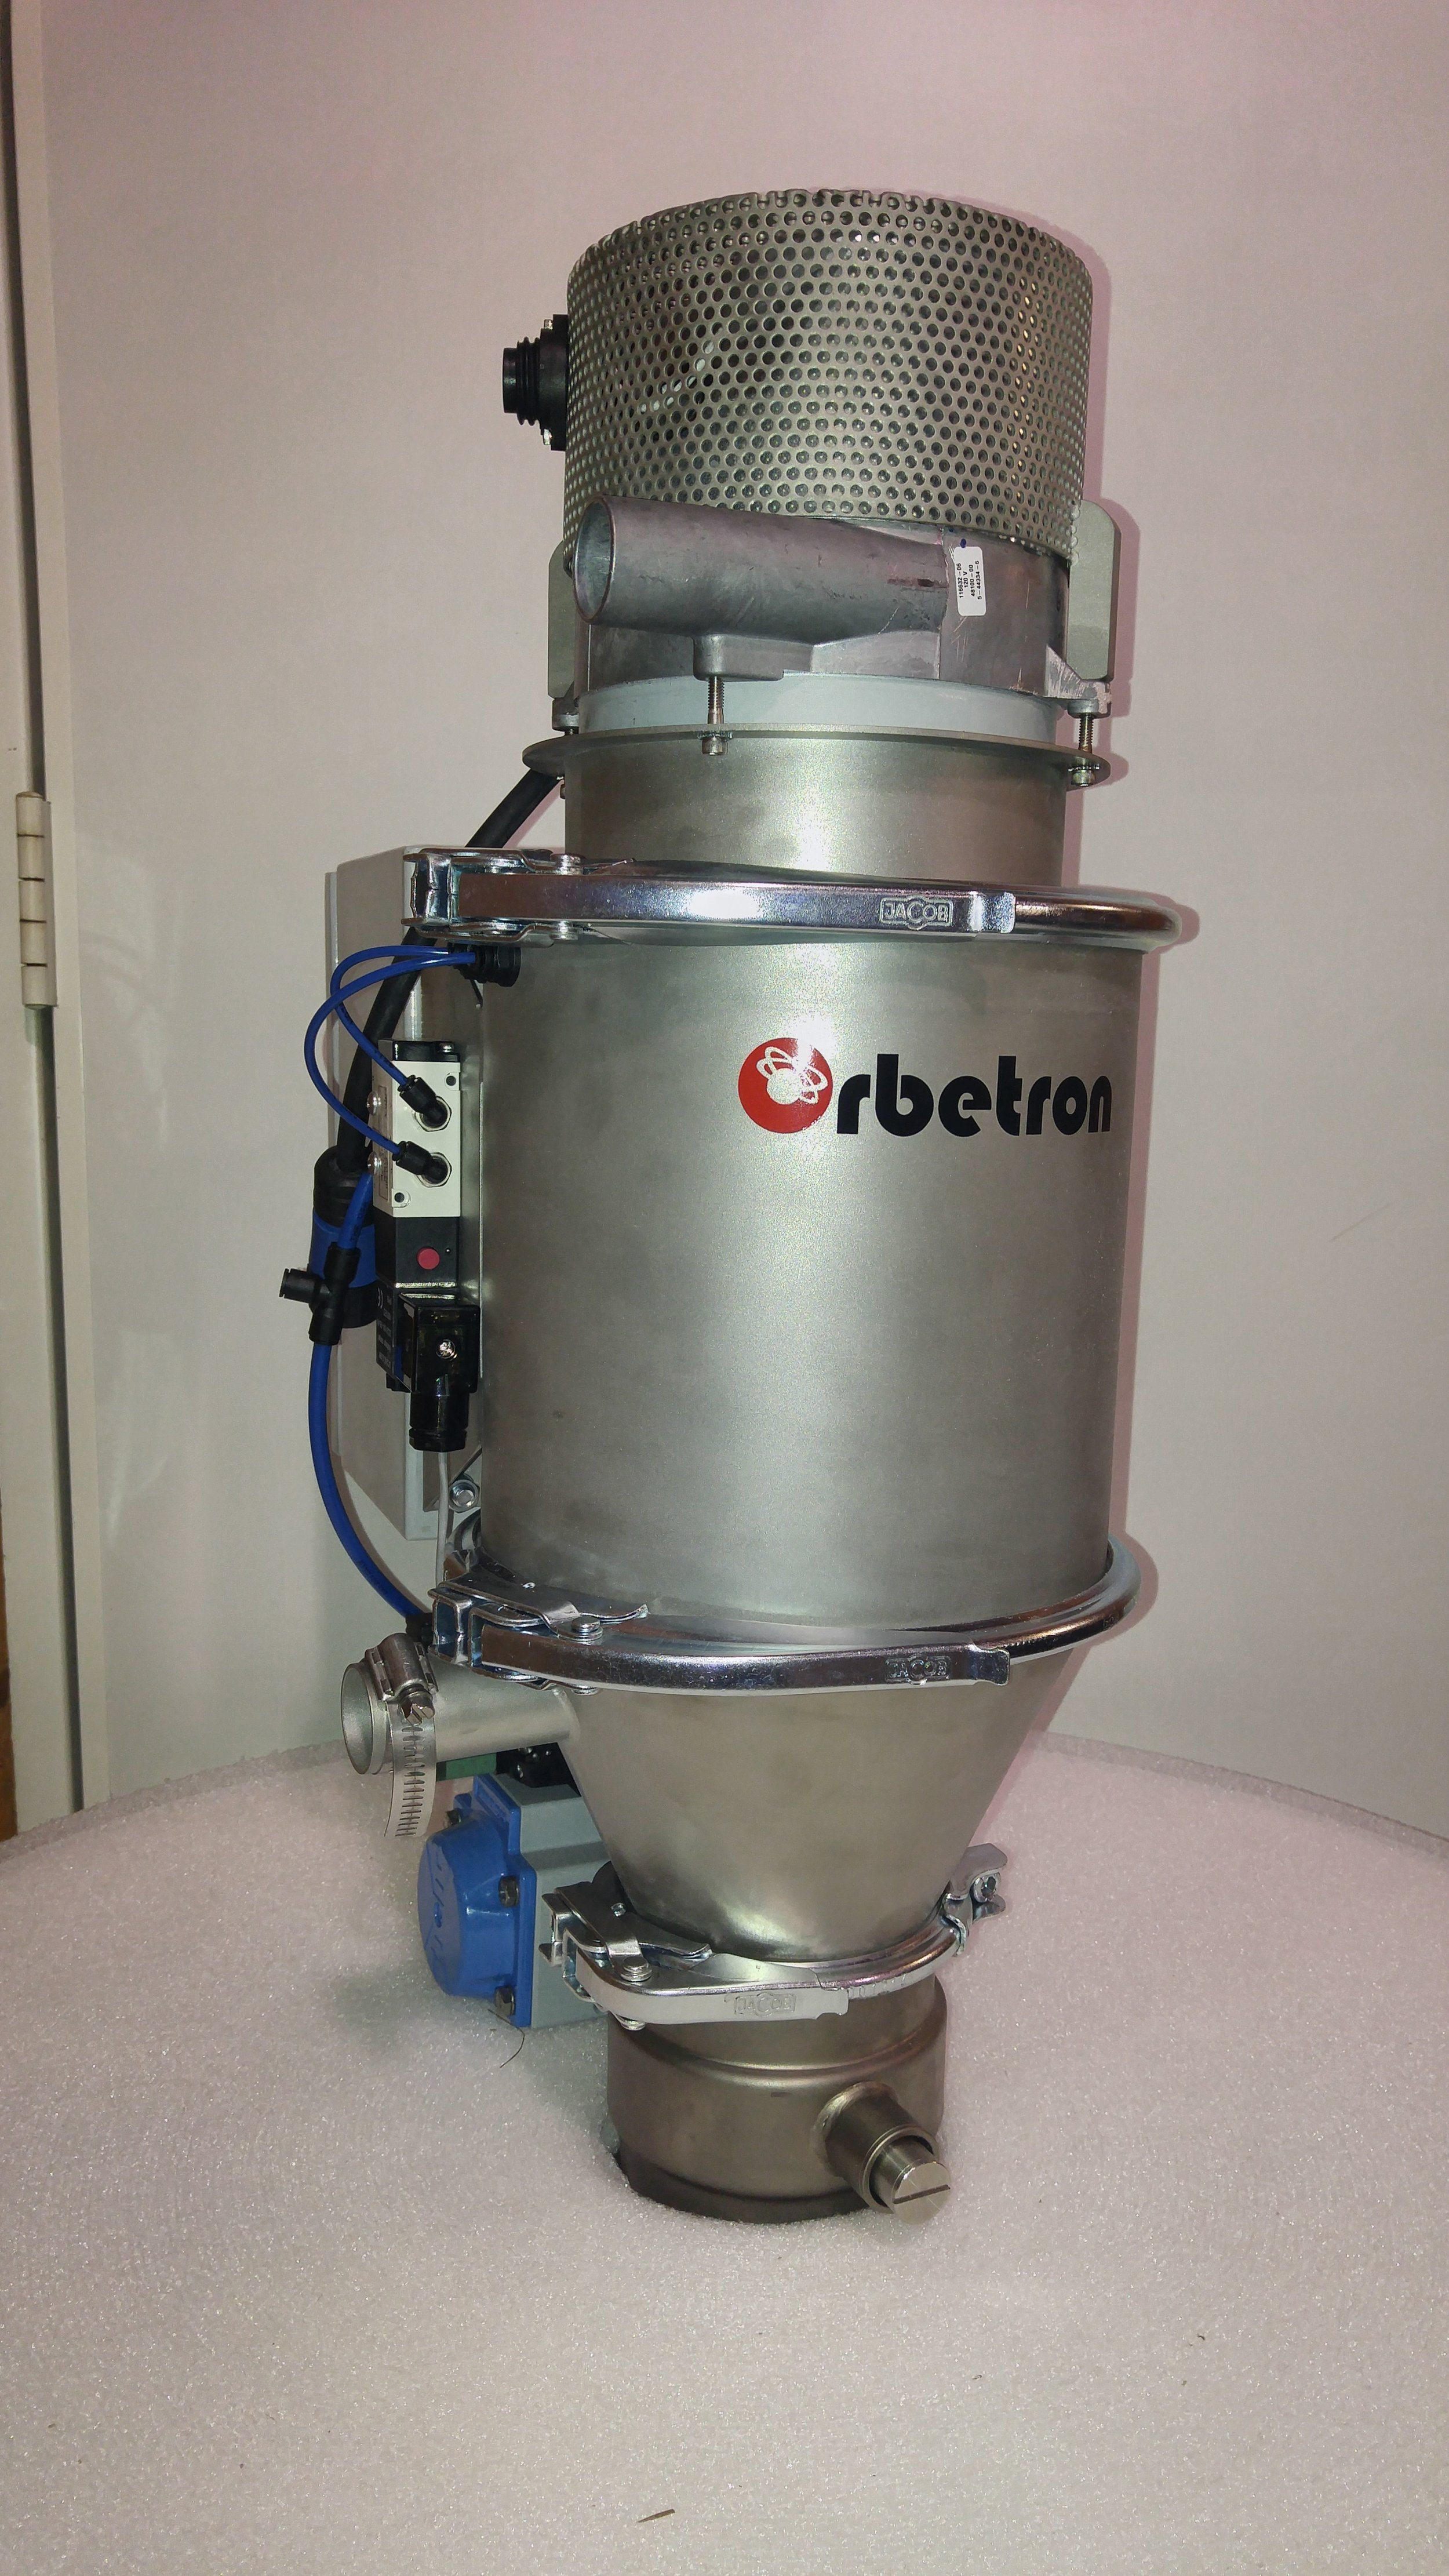 Orbetron Powder Loaders & Receivers OPL